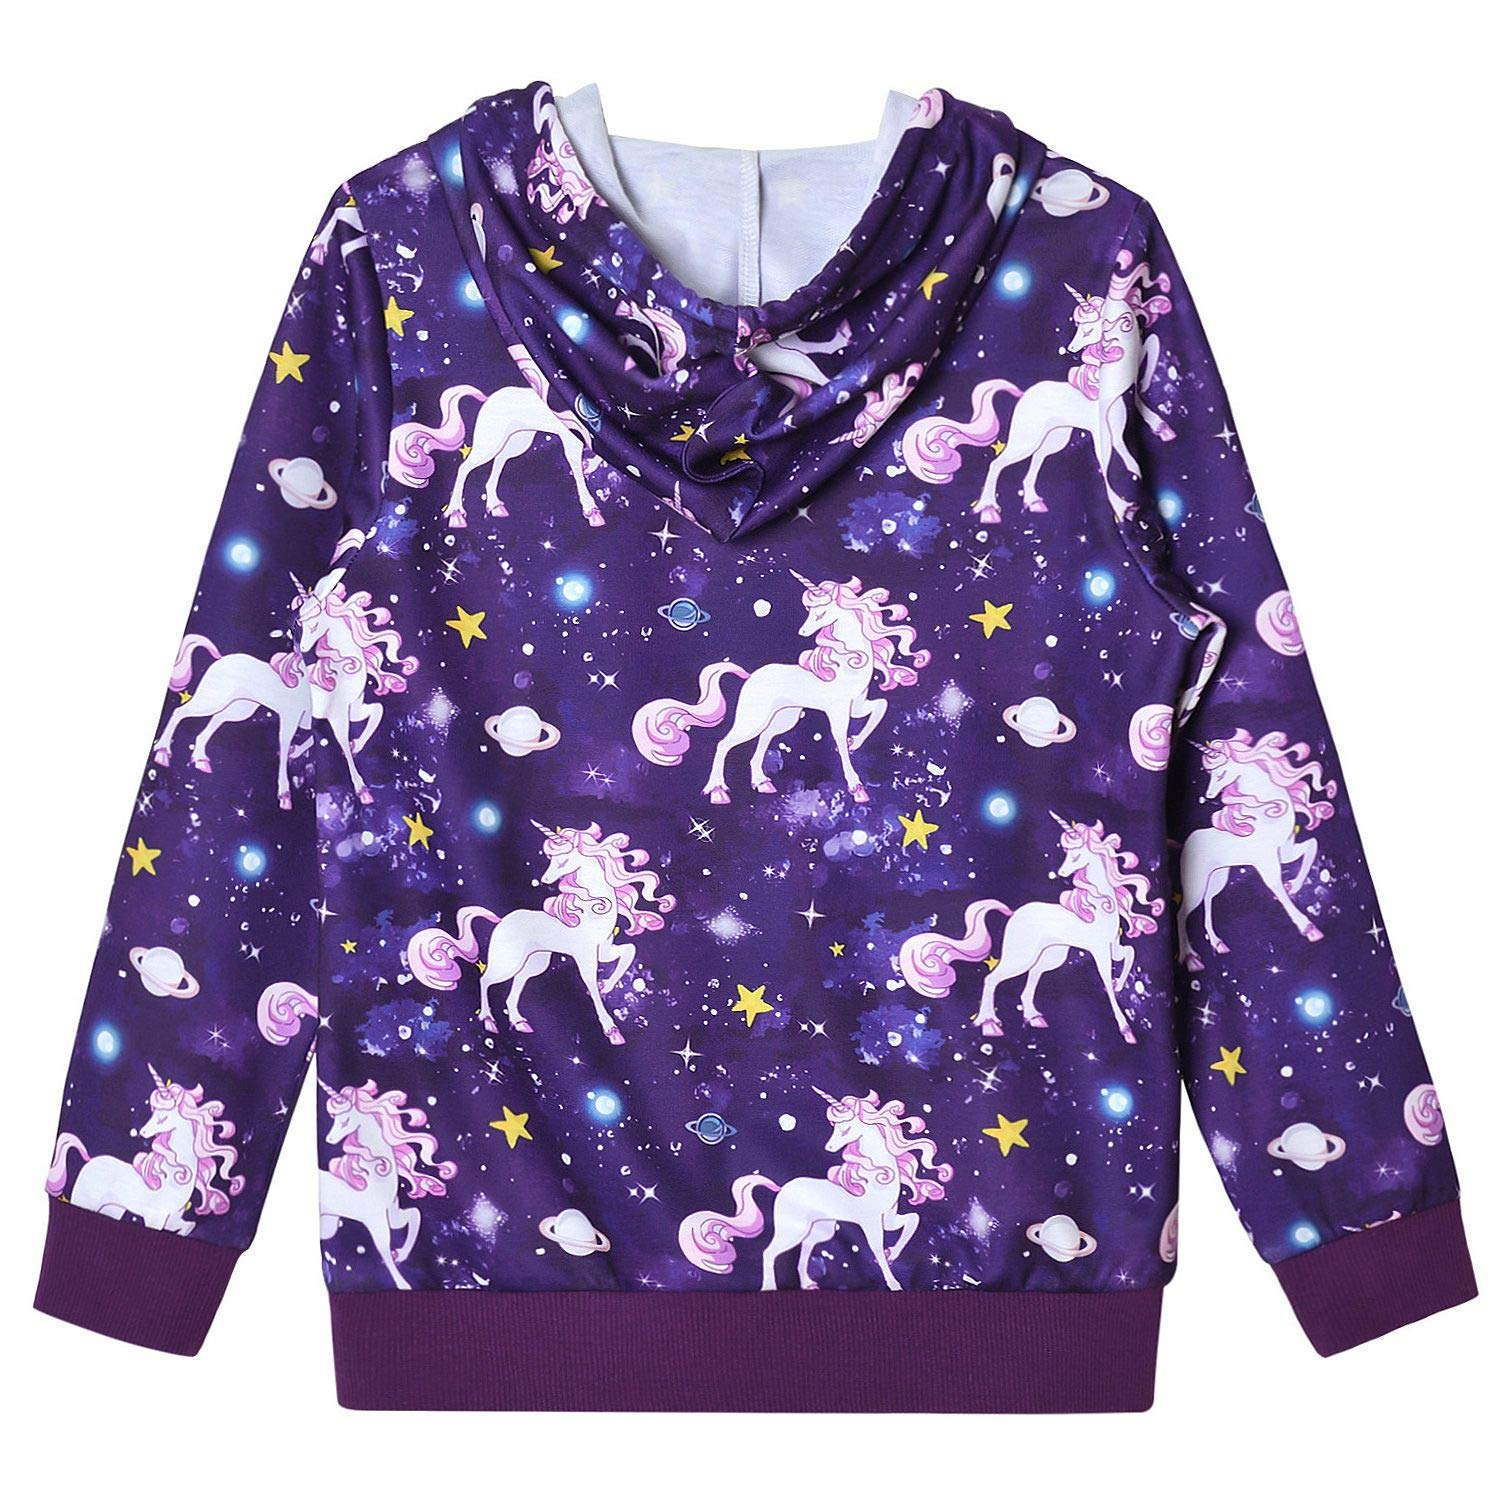 Jxstar Hoodie for Girls Unicorn Cat Sweatshirt Pullover Shirts Clothes for Kids